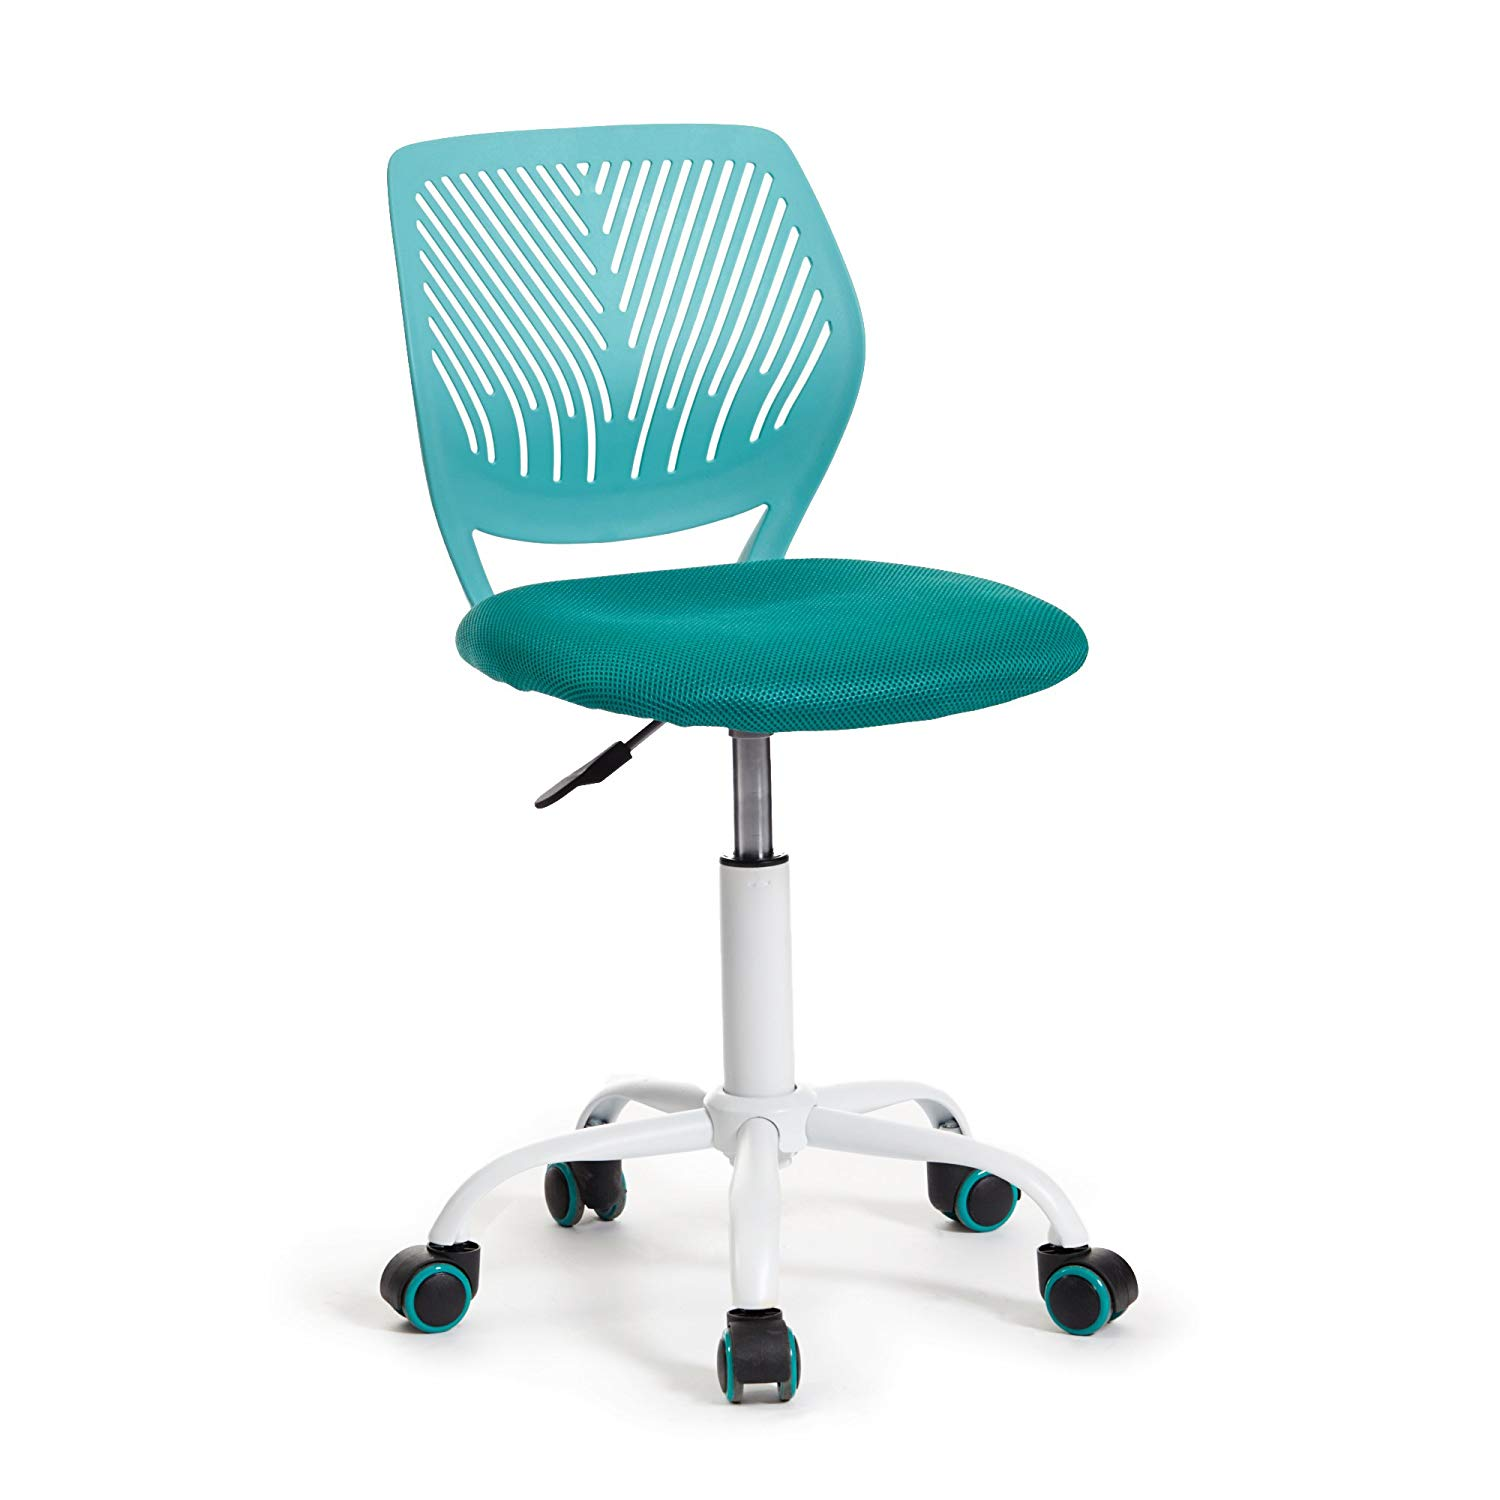 Desk chairs amazon.com: green forest office work desk chair adjustable middle back home YBXSJBO